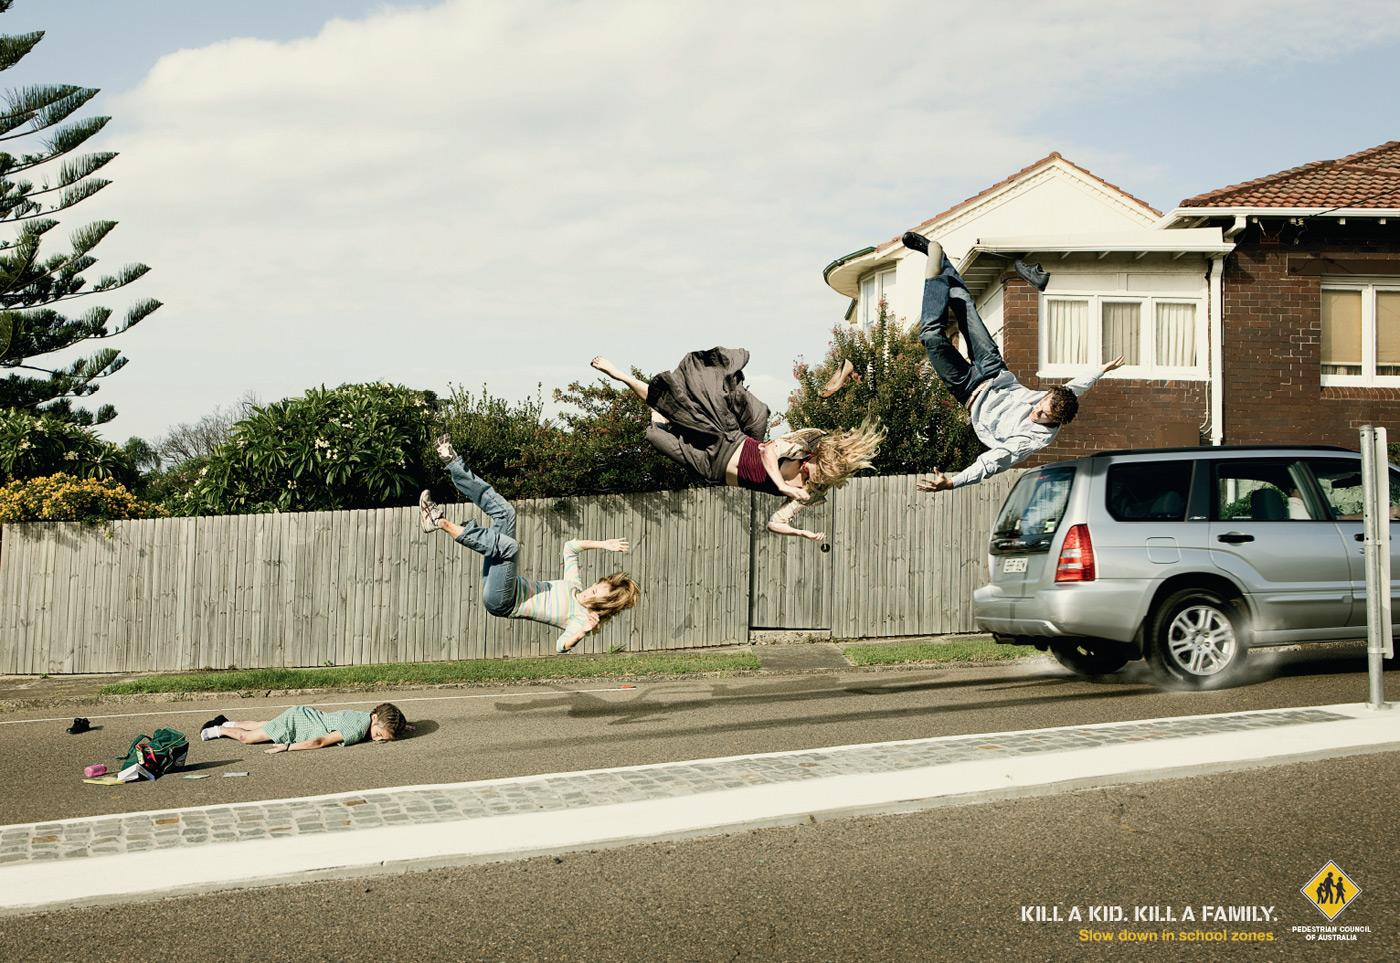 Pedestrian Council of Australia Print Ad -  Family, 2